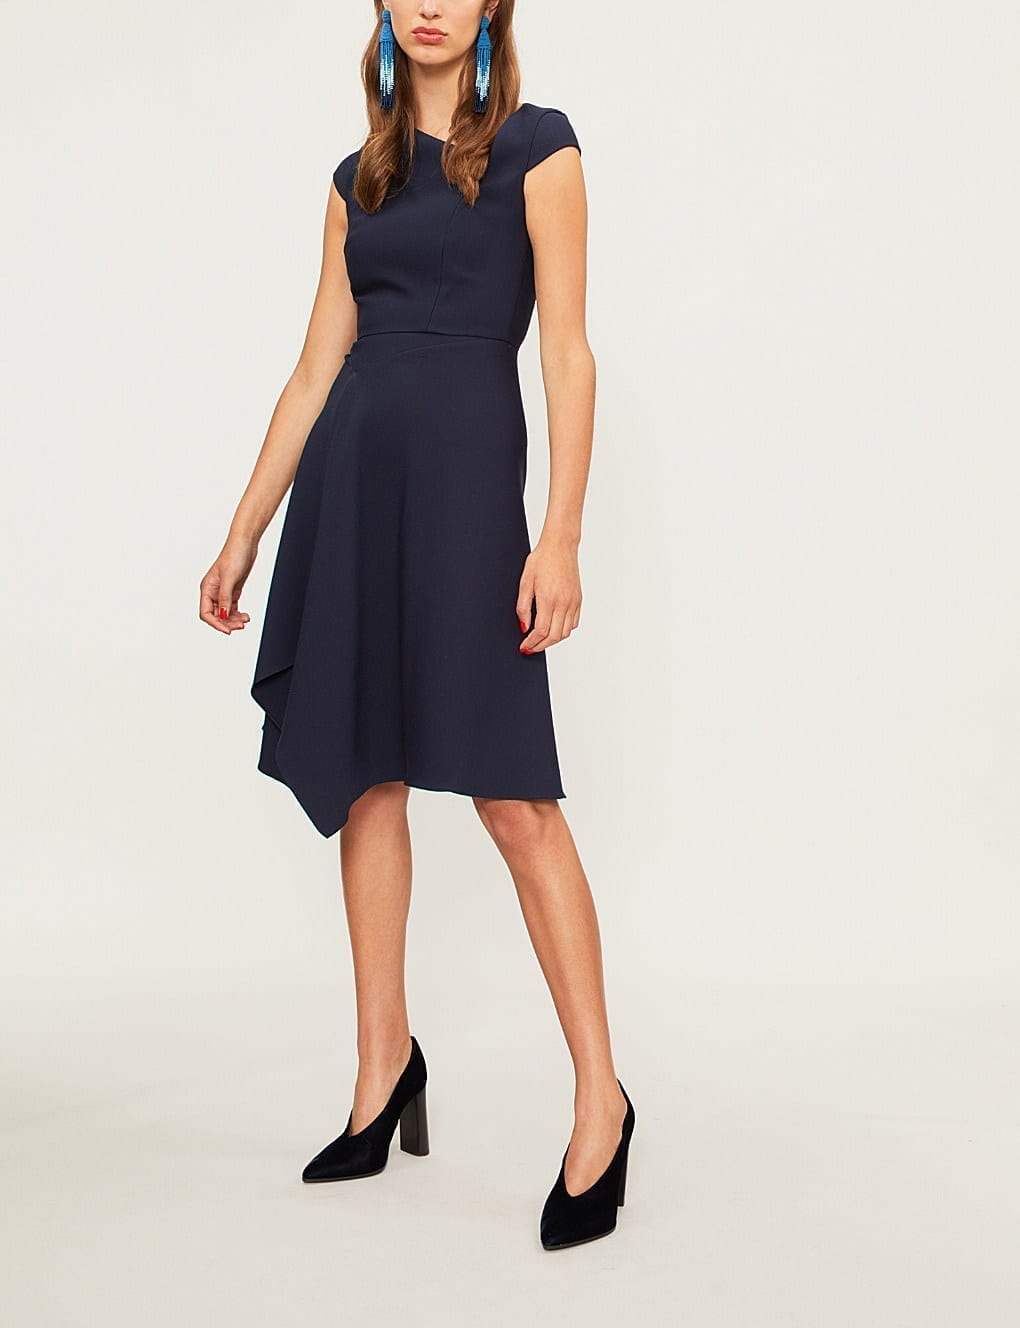 ROLAND MOURET Augustus Crepe Navy Dress